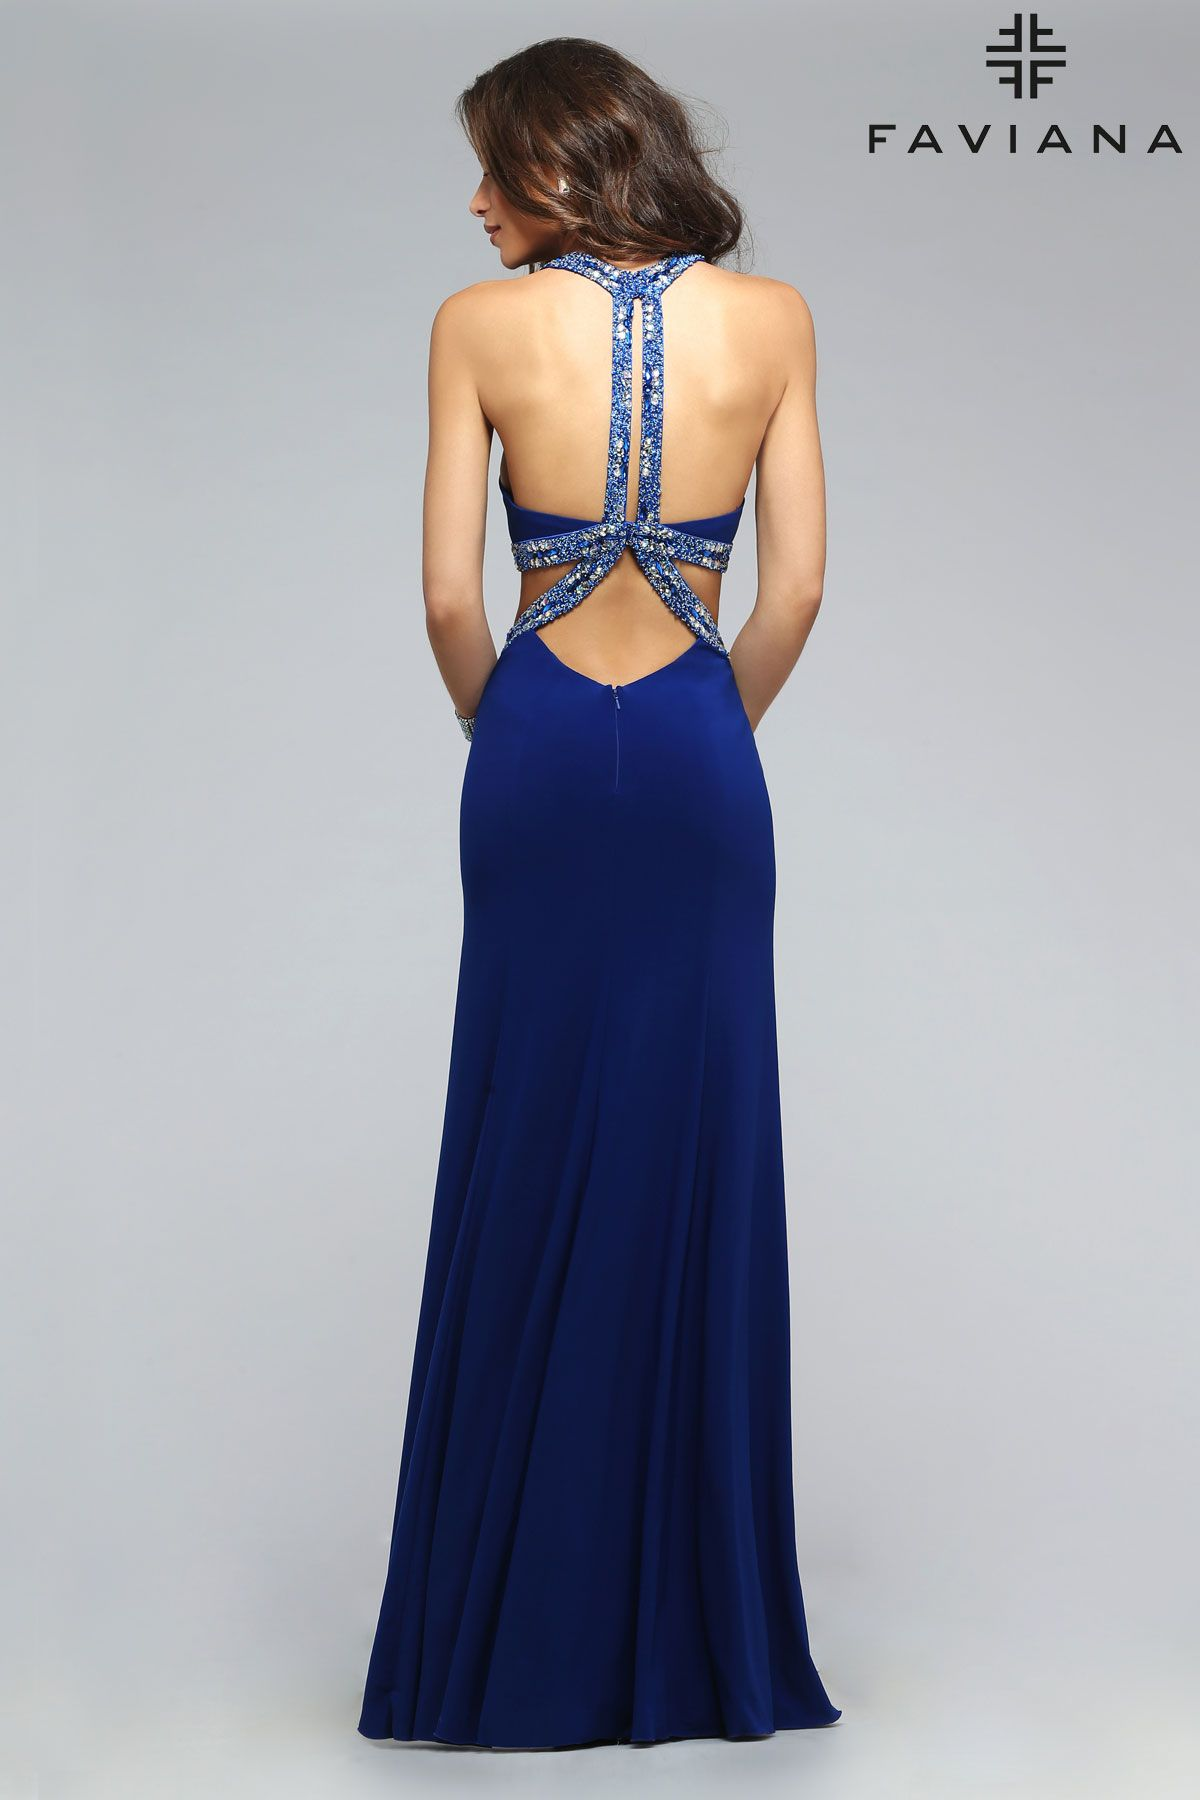 Jersey jeweled scoop neck dress with cut out side and beaded back